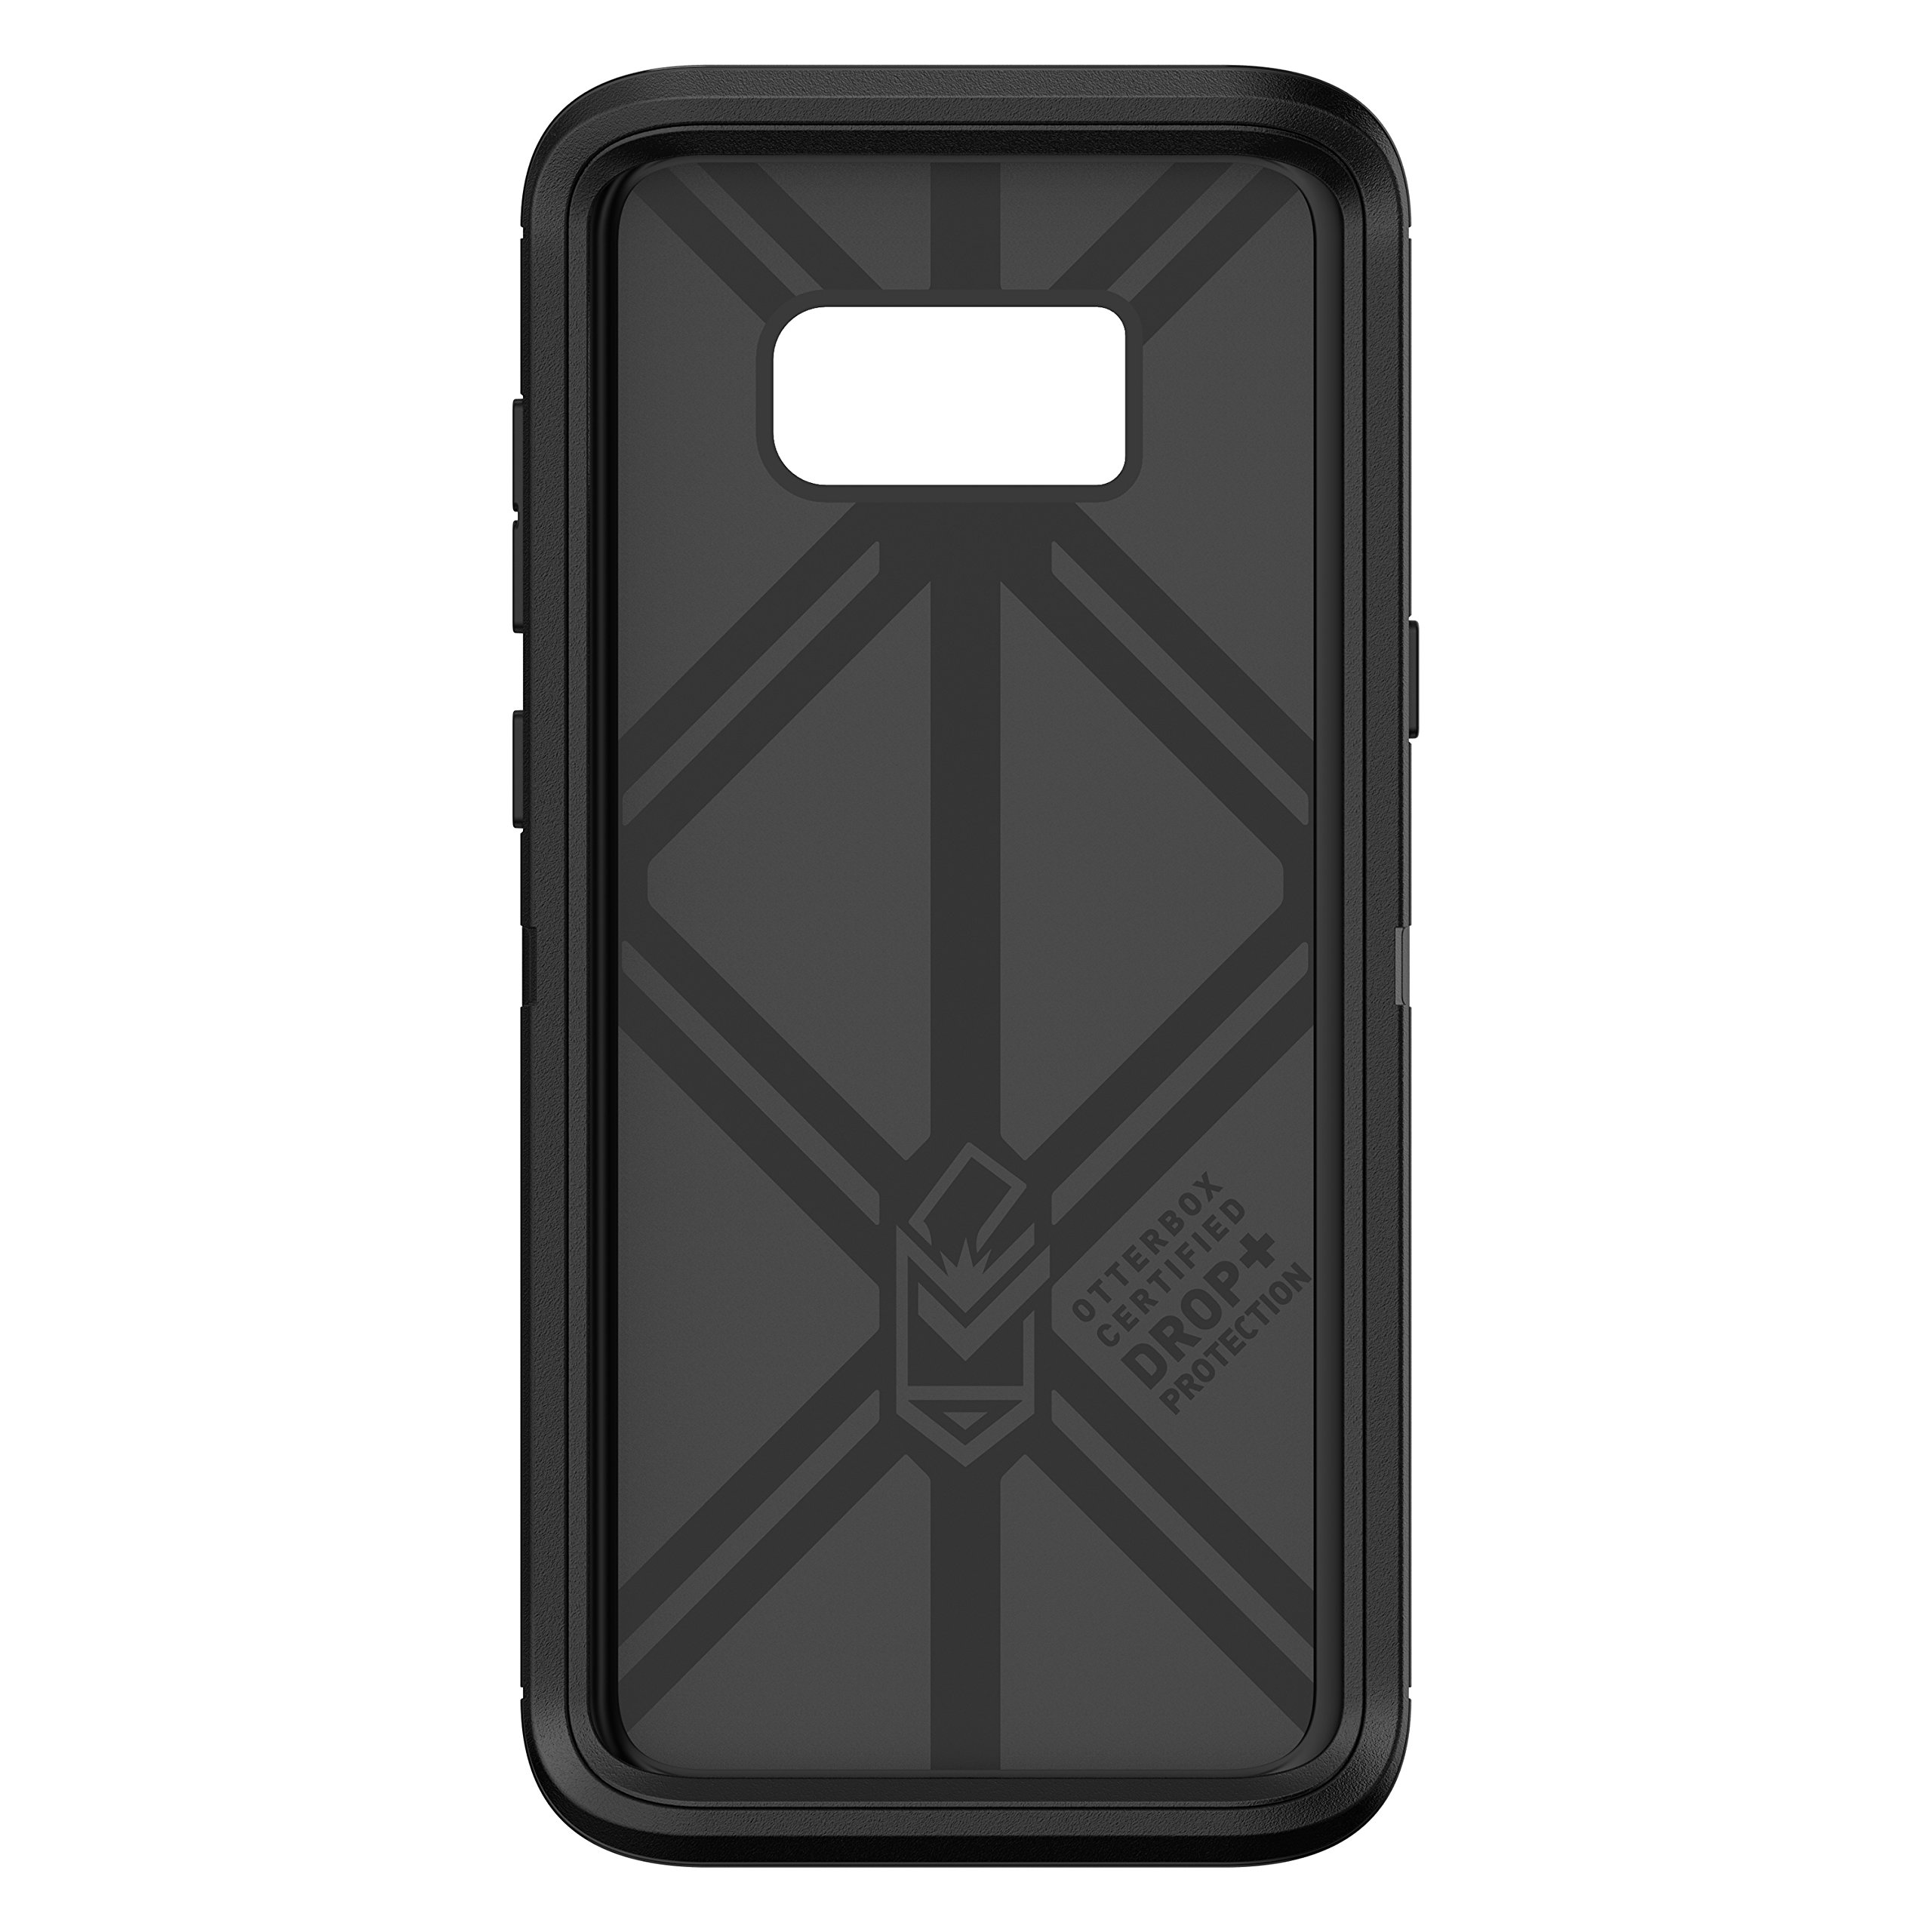 OtterBox Defender Series SCREENLESS Edition for Samsung Galaxy S8+ - Frustration Free Packaging - Black by OtterBox (Image #4)